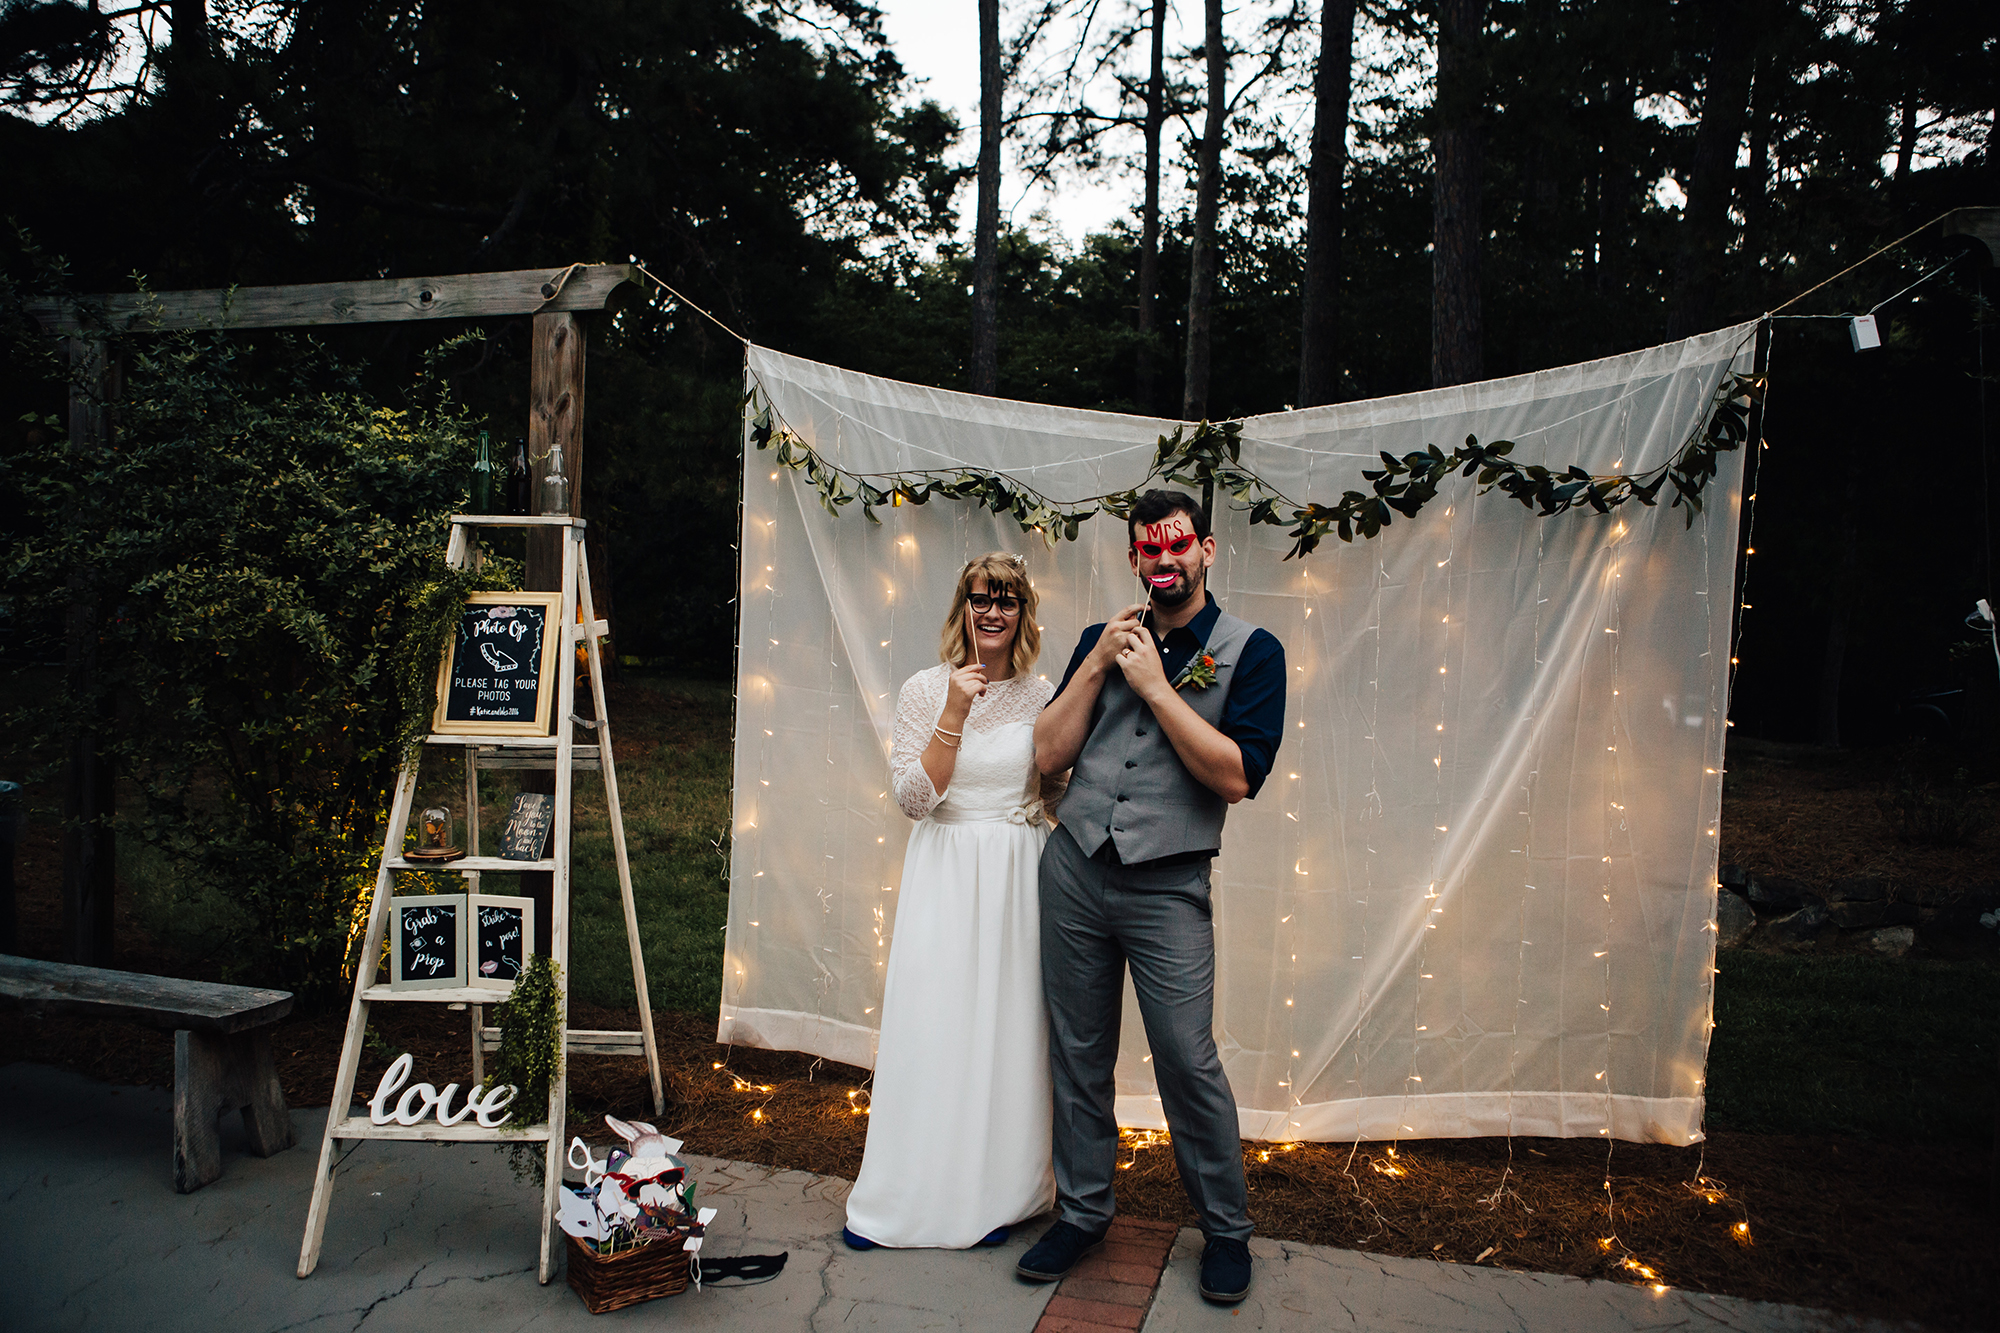 twinkle light photo booth with props